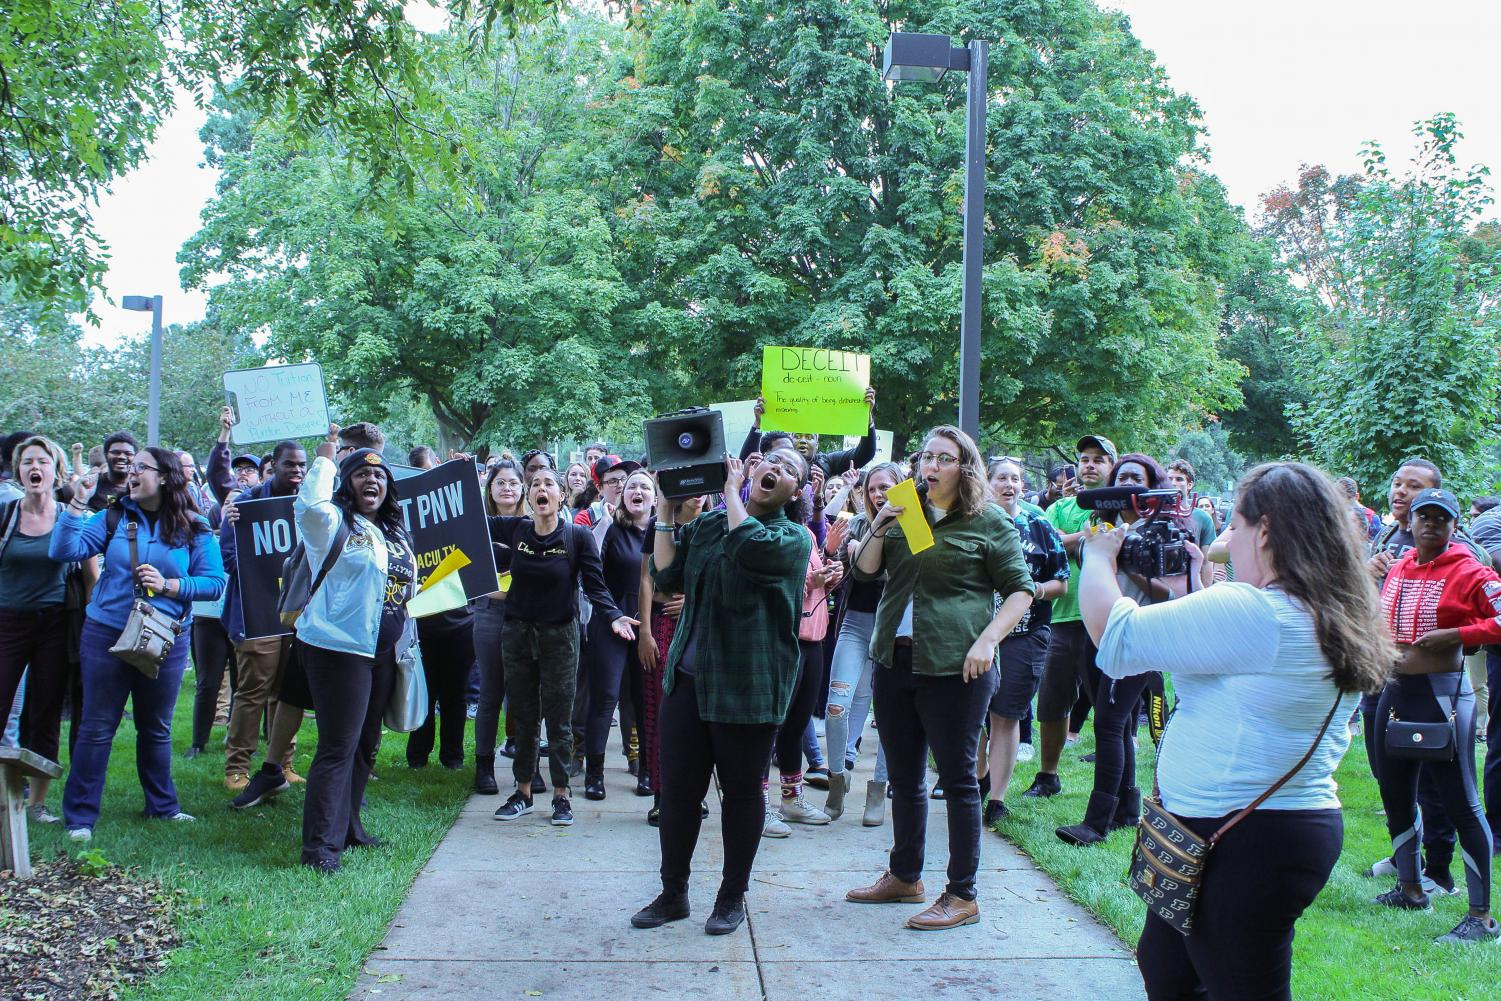 Students protested outside the university administration offices on both campuses on Oct. 1 to show their disagreement with the proposed diploma changes.